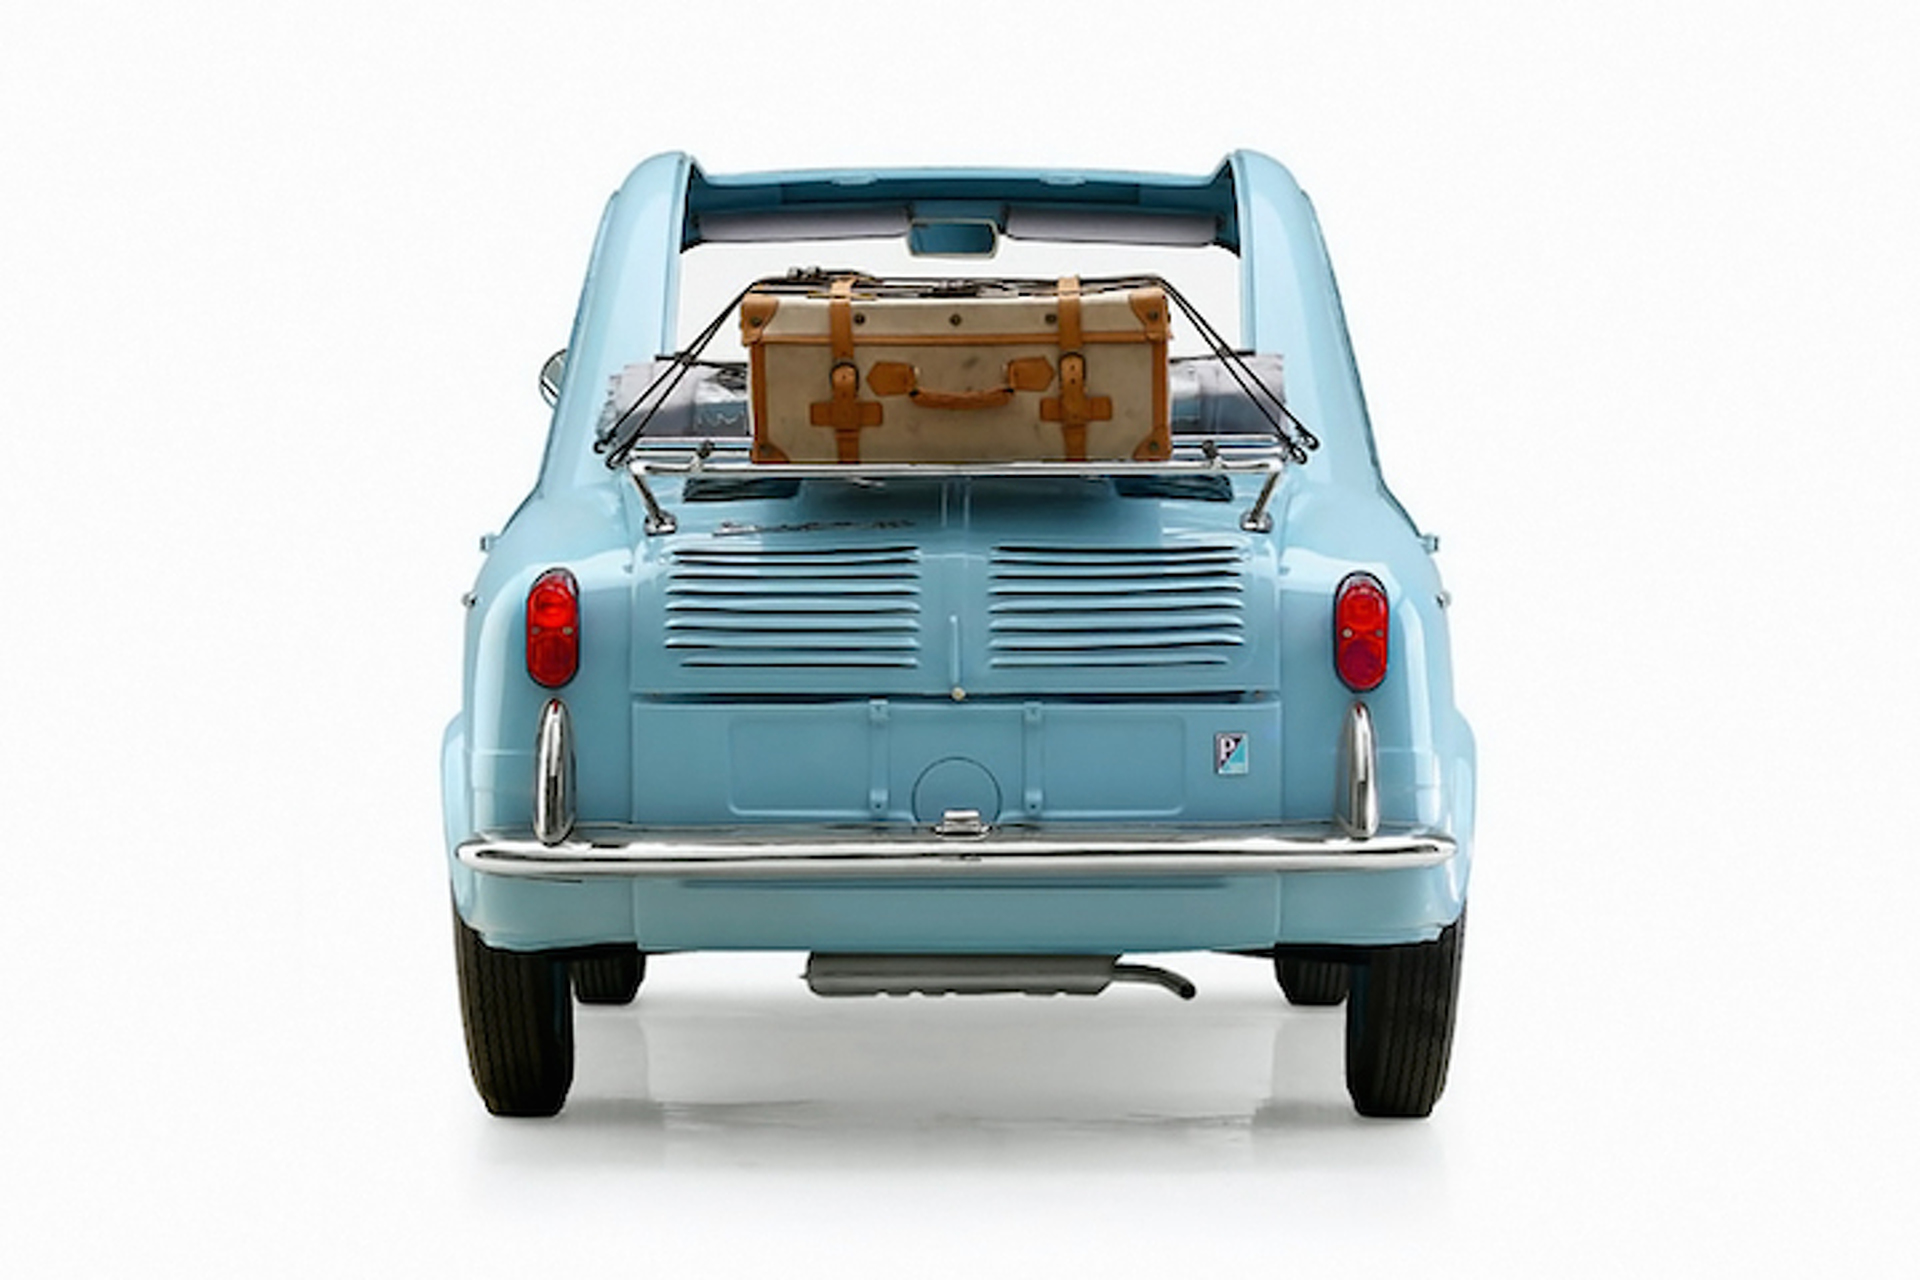 The Vespa 400 is the Cutest Little Car You Never Knew Existed